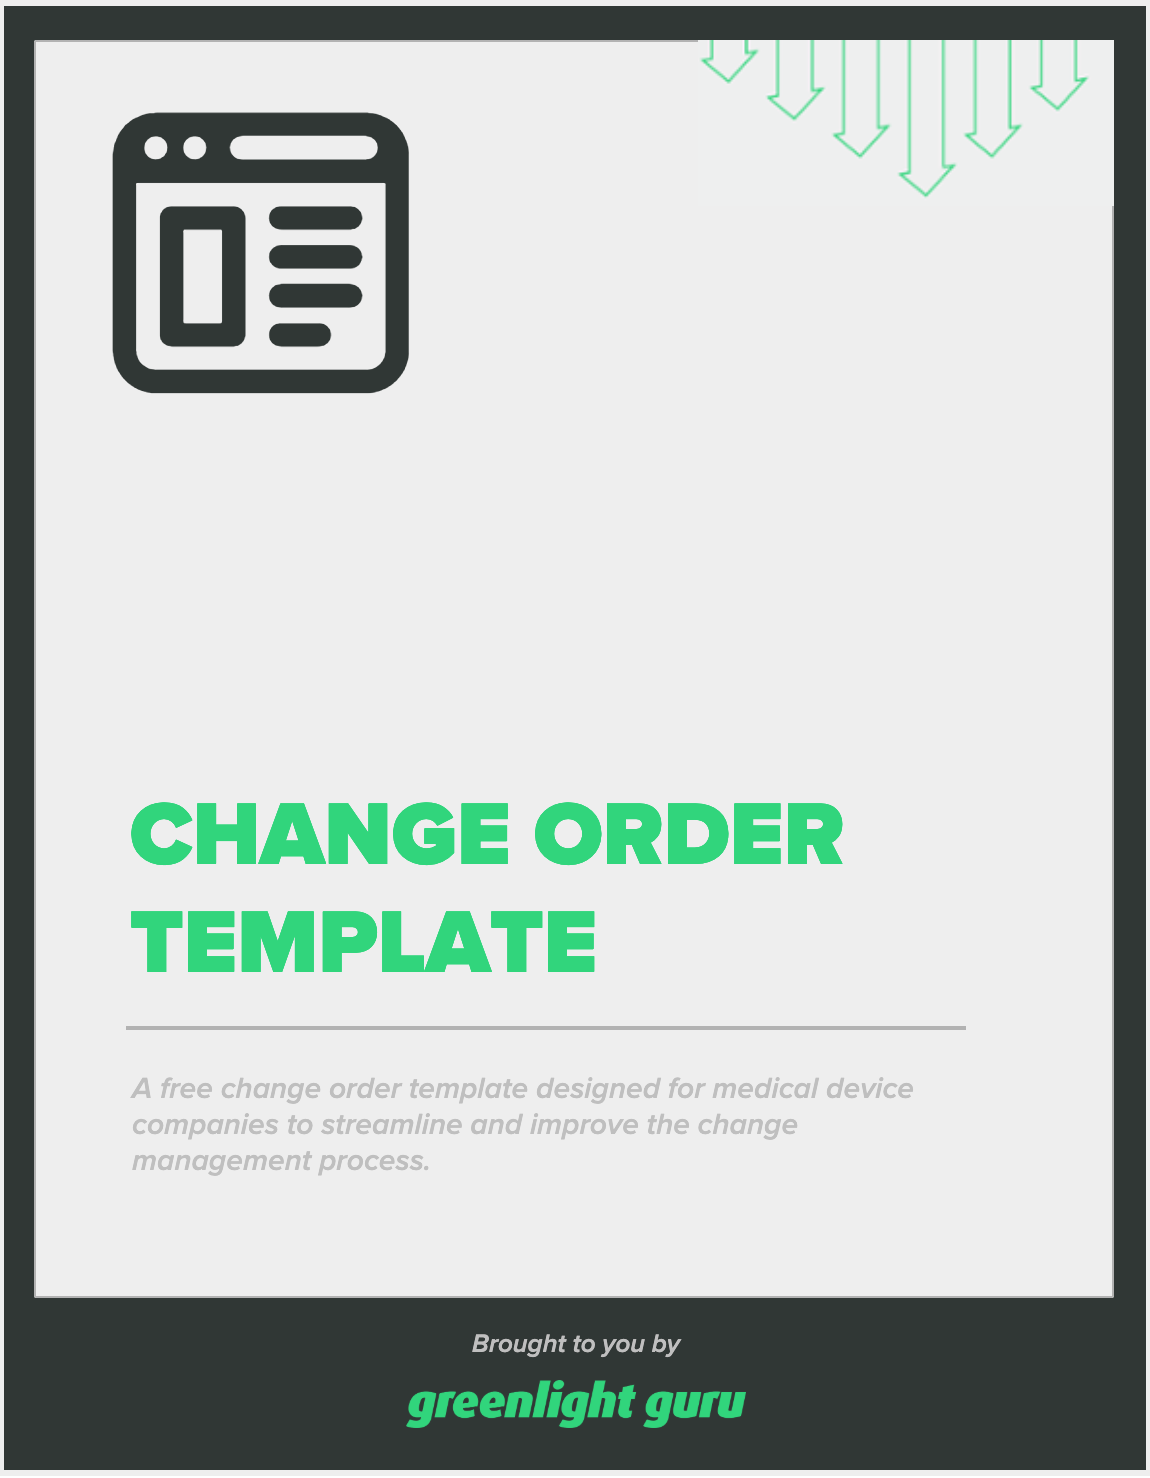 Change order template - slide-in cover